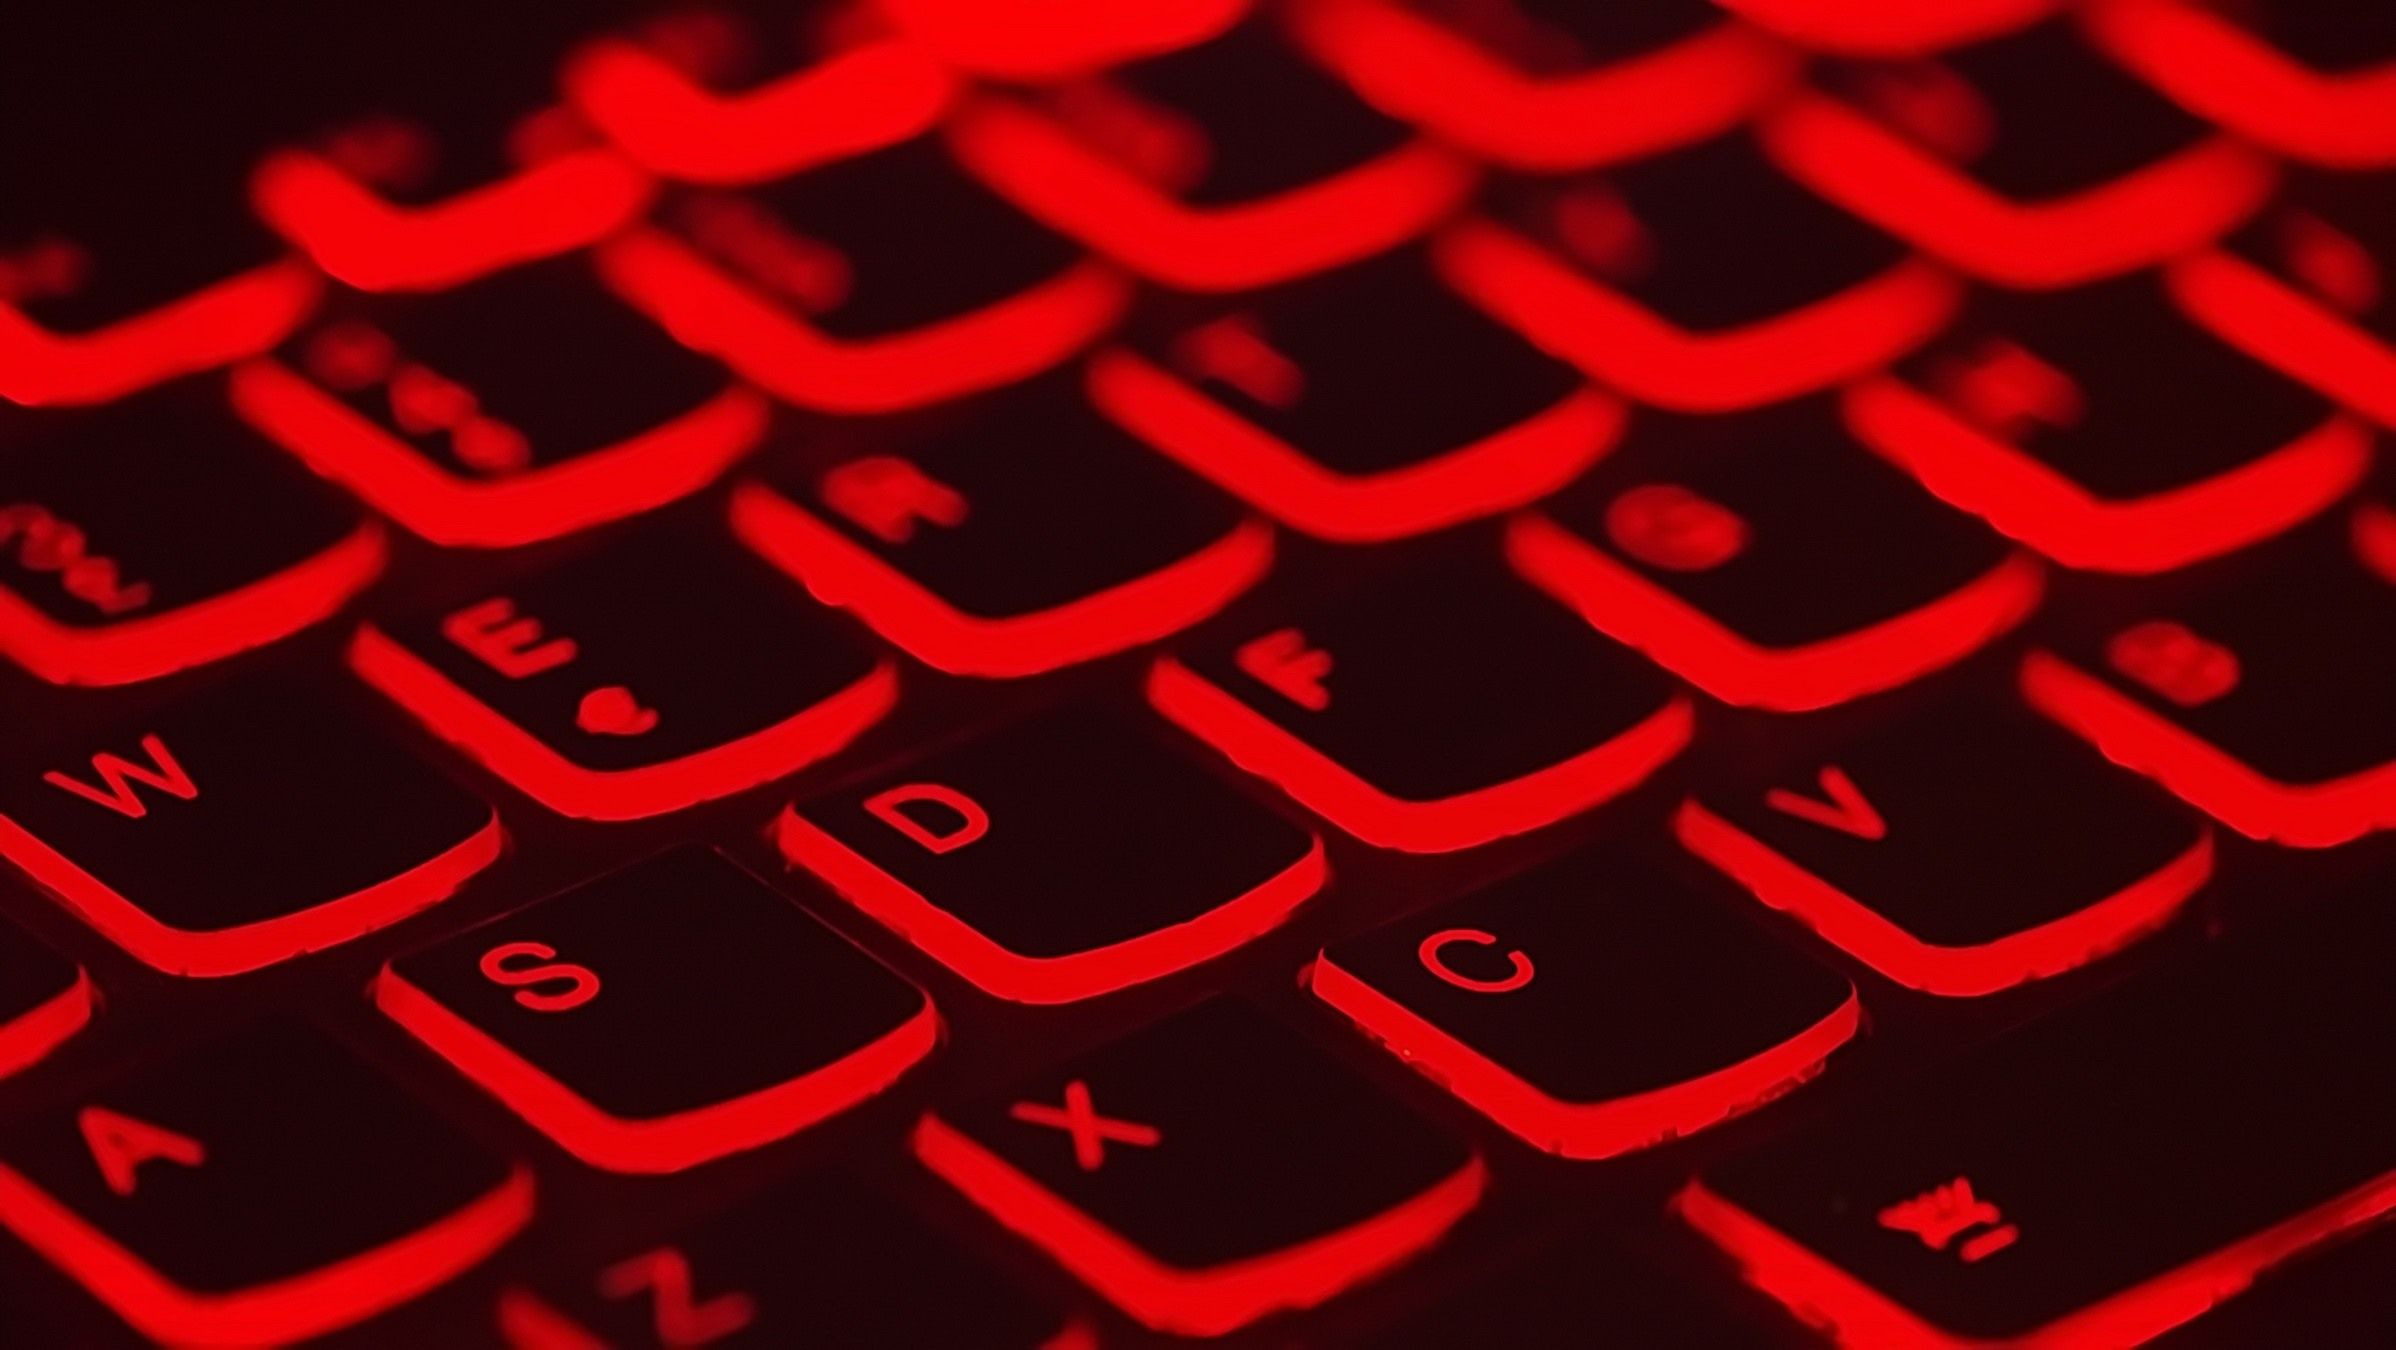 Keyboard with glowing red keys